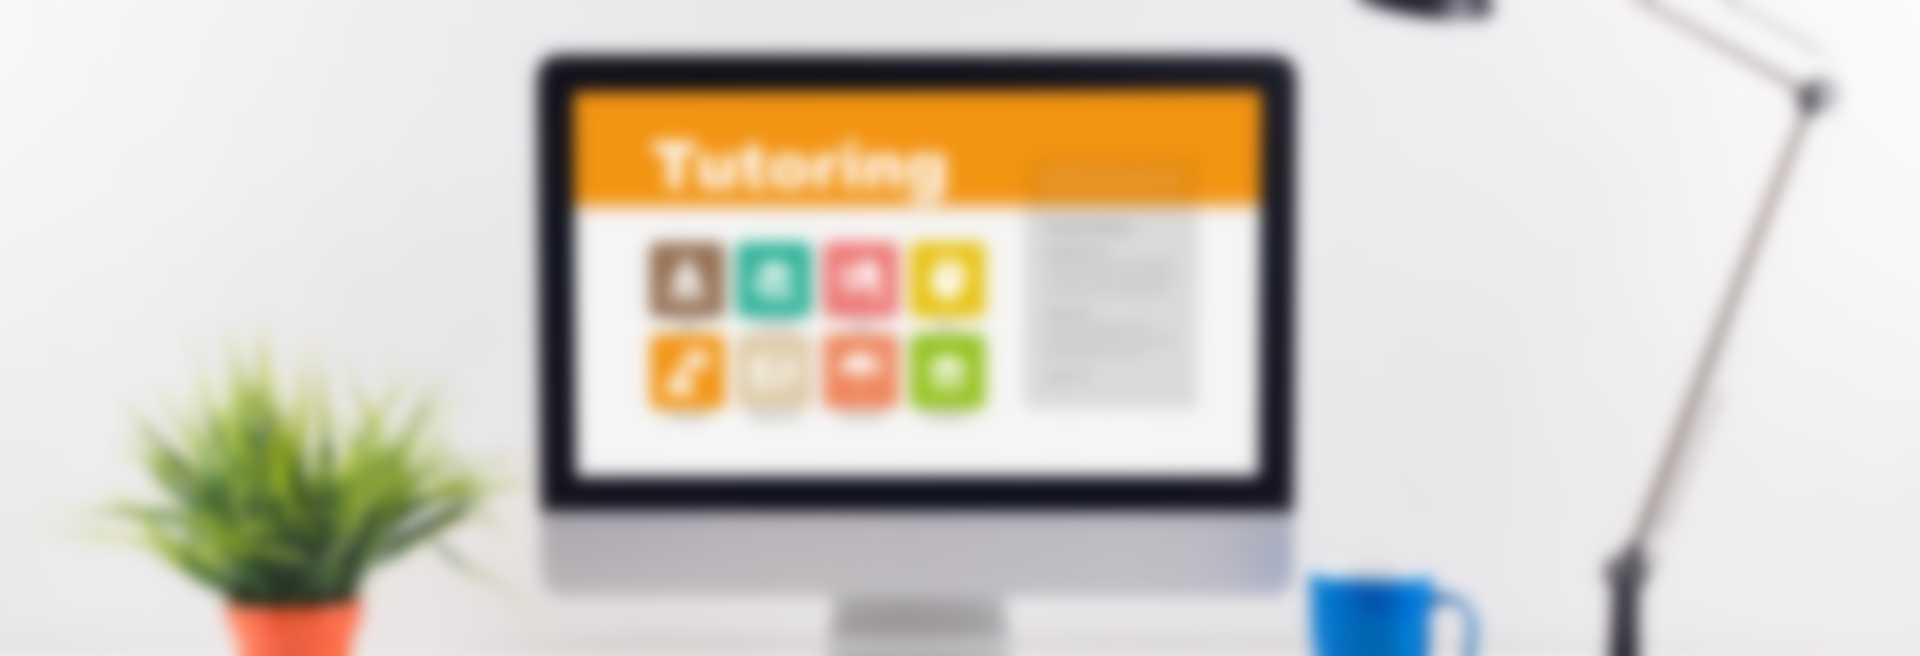 Tutoring screen on the workplace